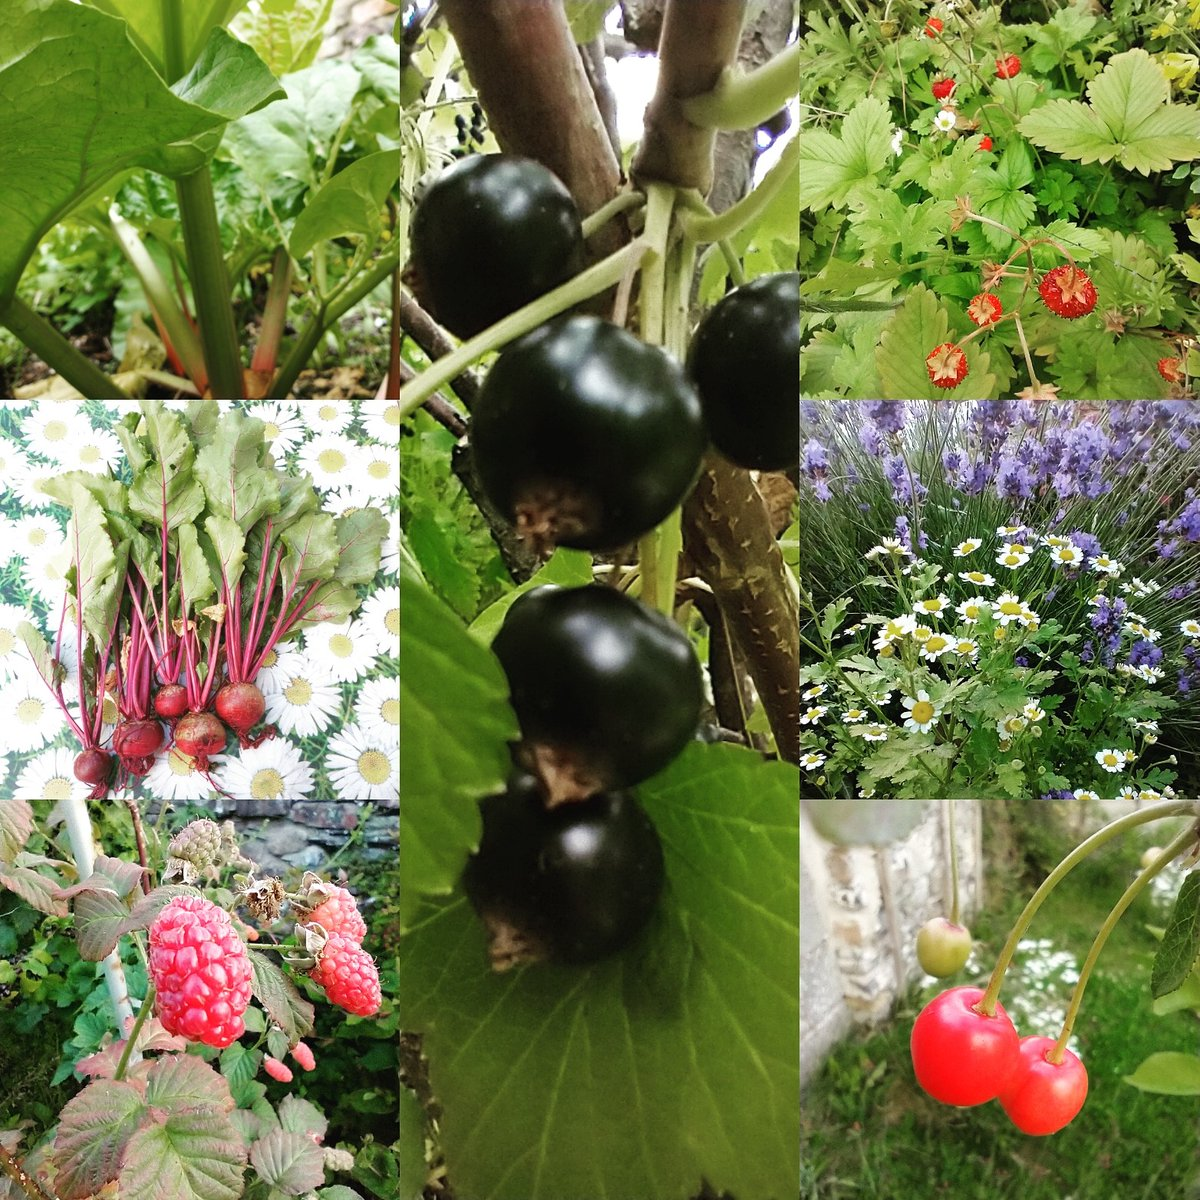 So many great flavours in the garden this #july! Gardening is more than just #food & #drink, more than just about running a #smallbusiness. It's #health #exercise #mentalhealth #environment #nature https://t.co/1ZIk9XykSy